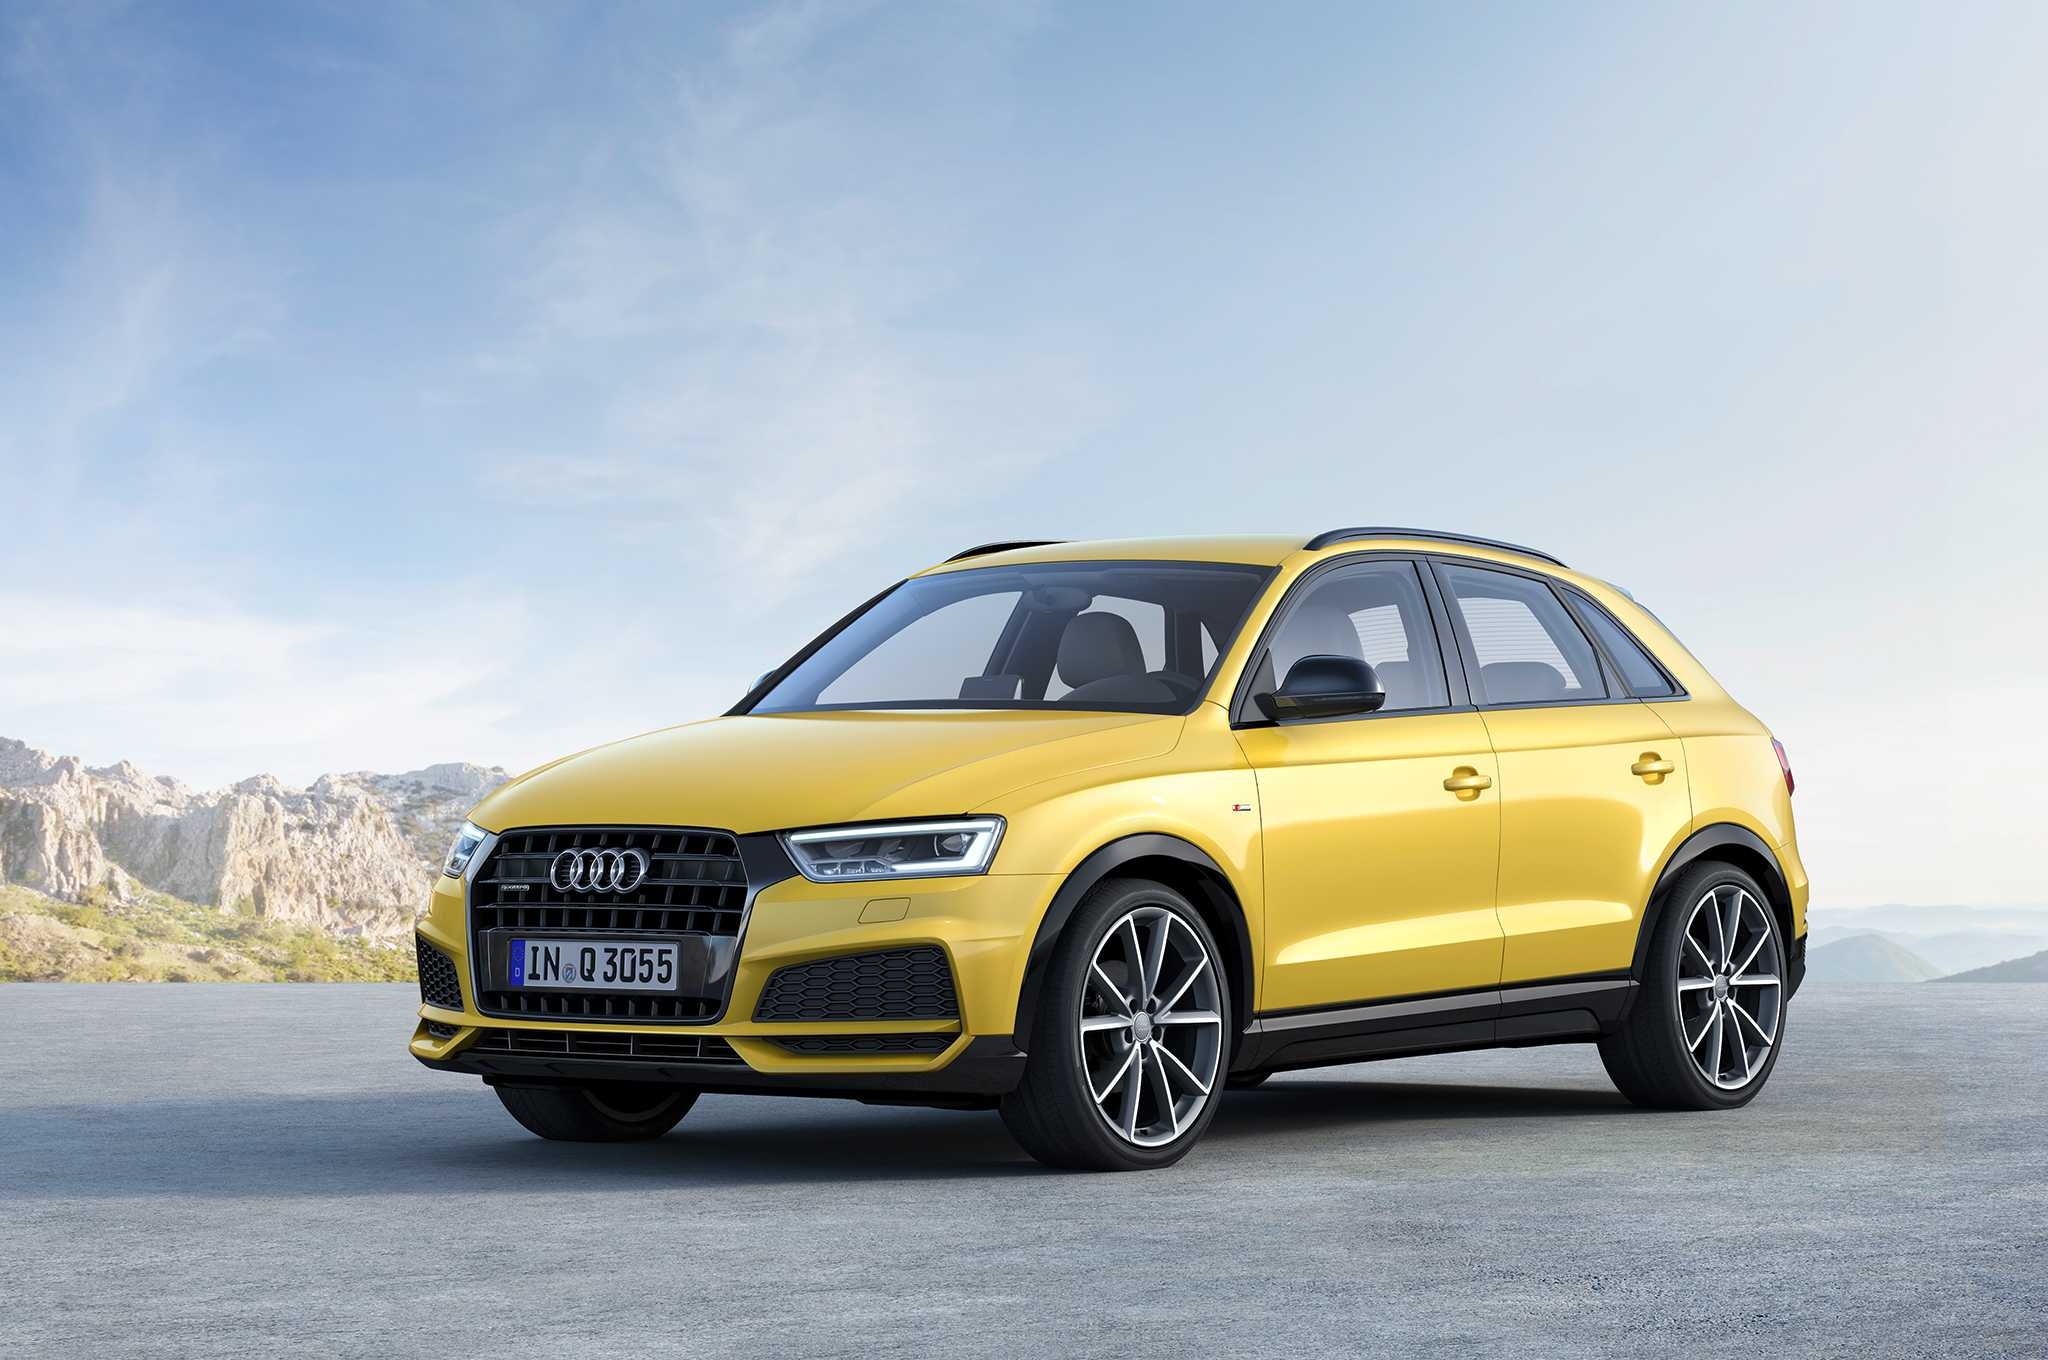 Audi Q3 facelifted again, adds S line competition trim